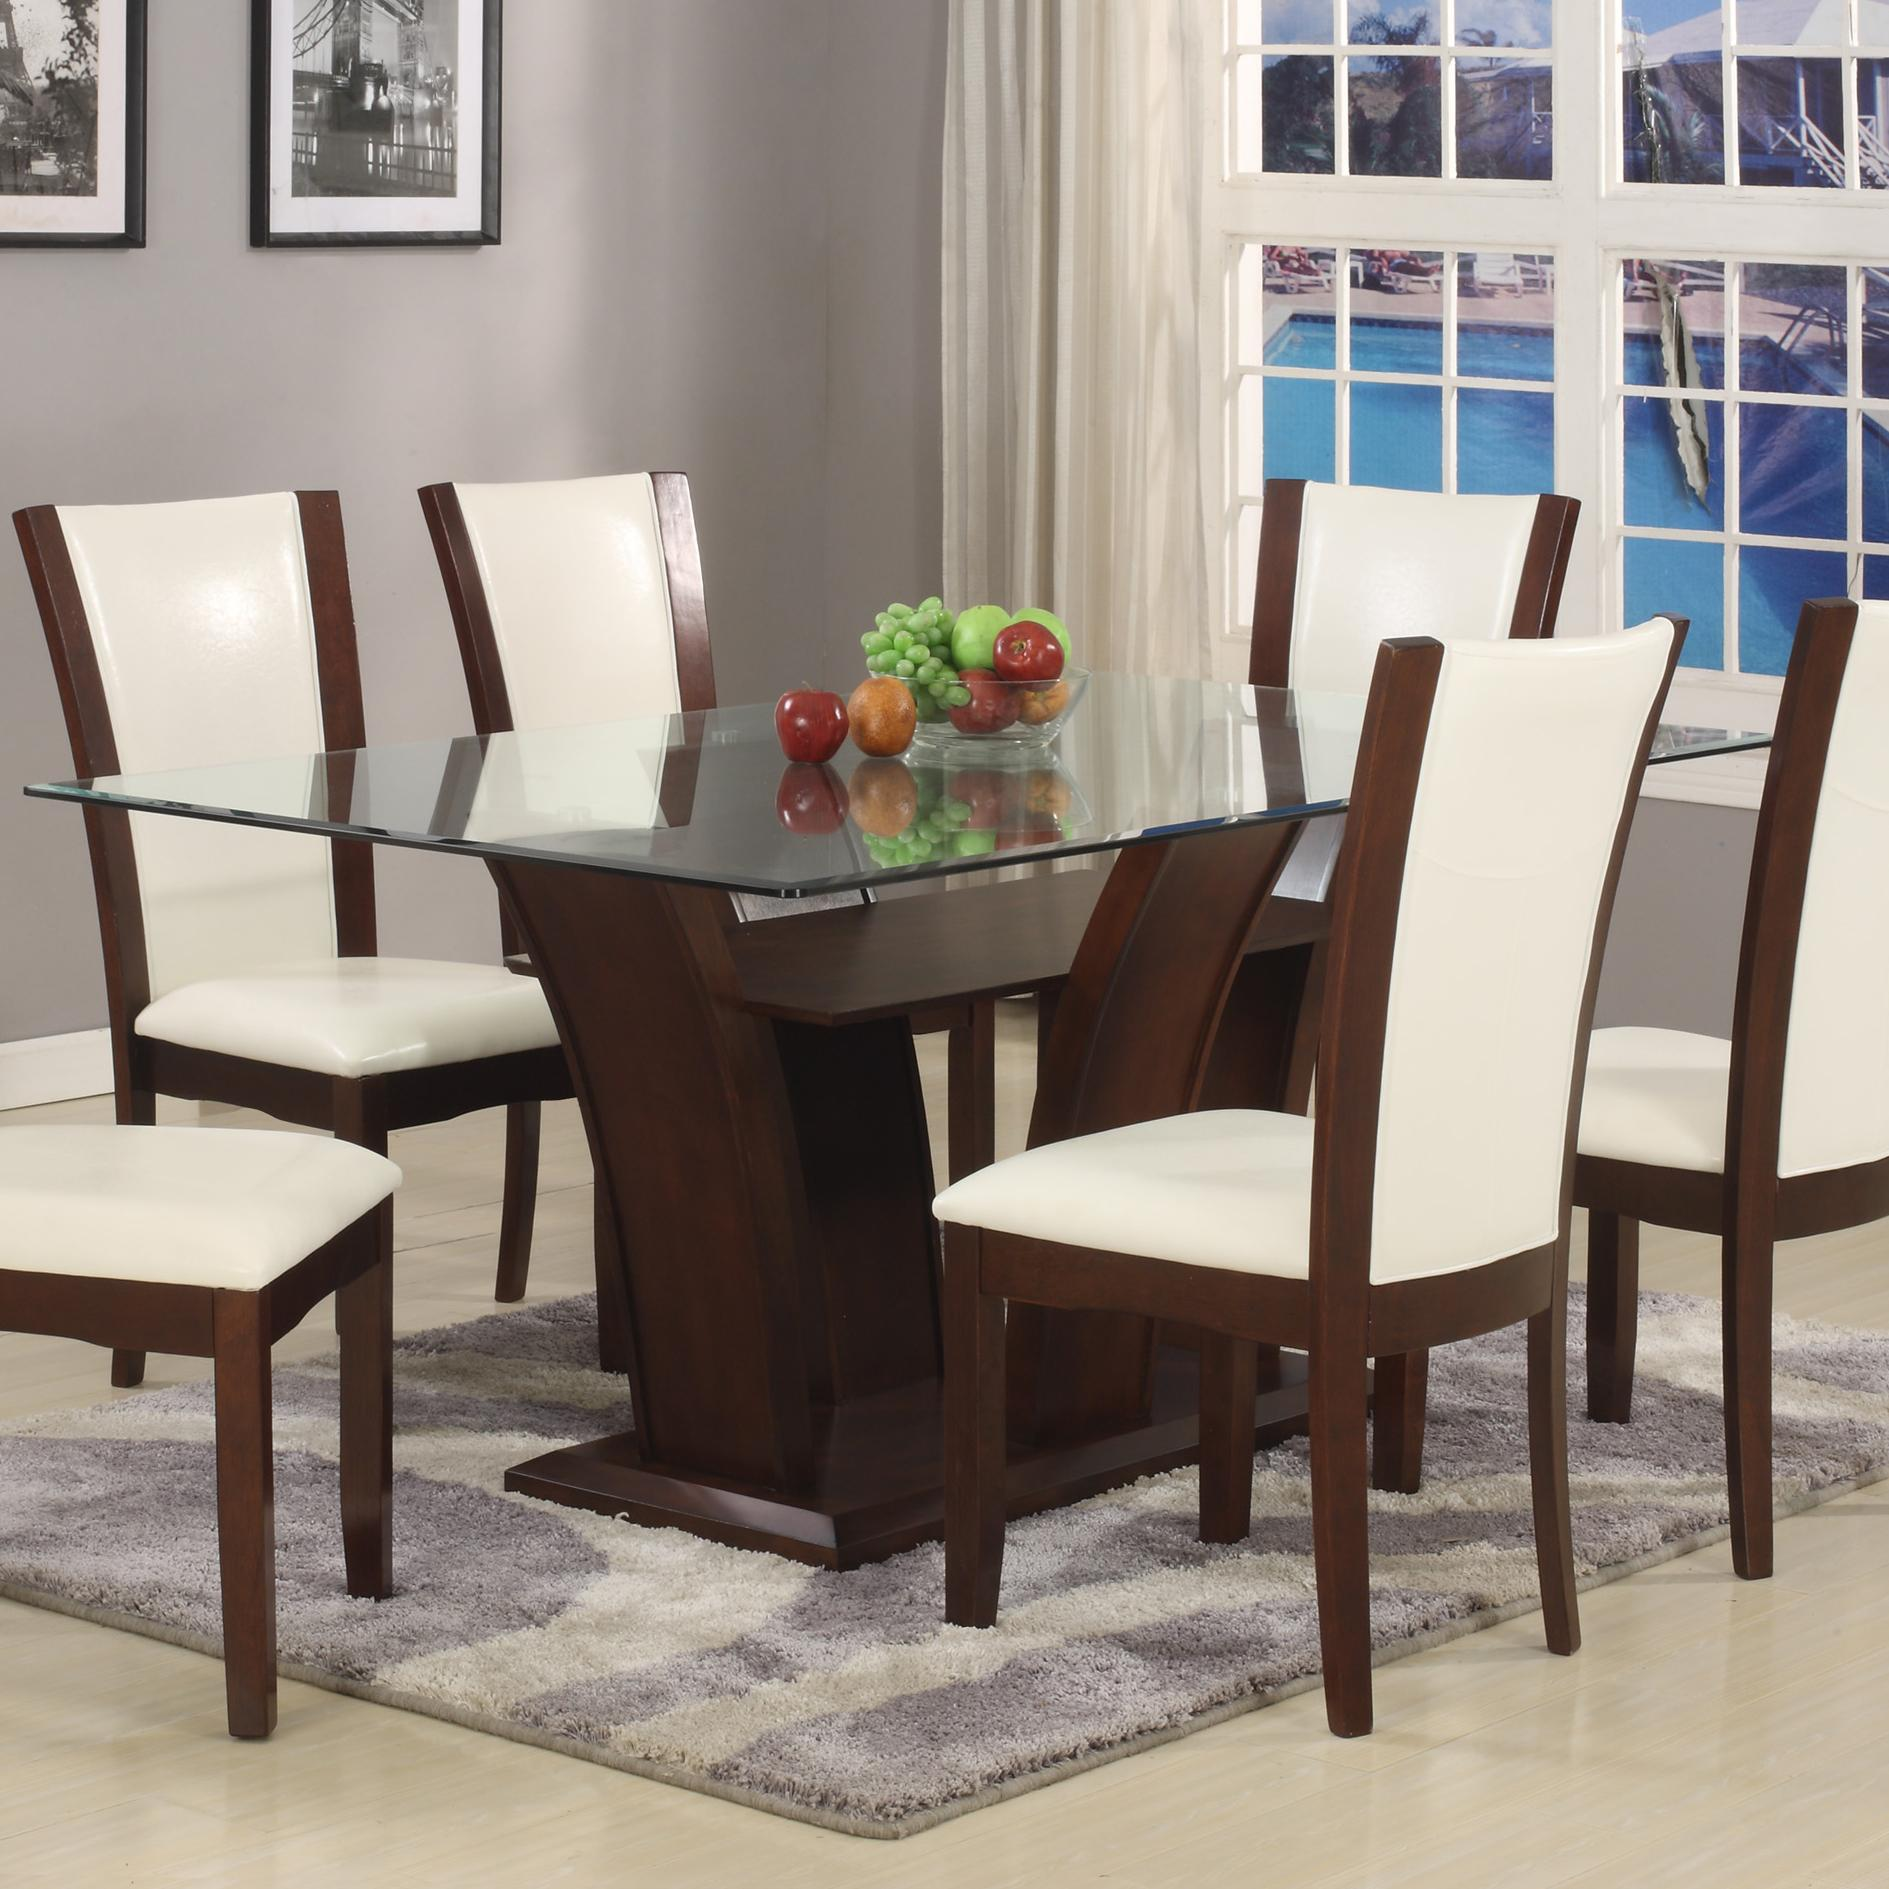 Camelia White Dining Table